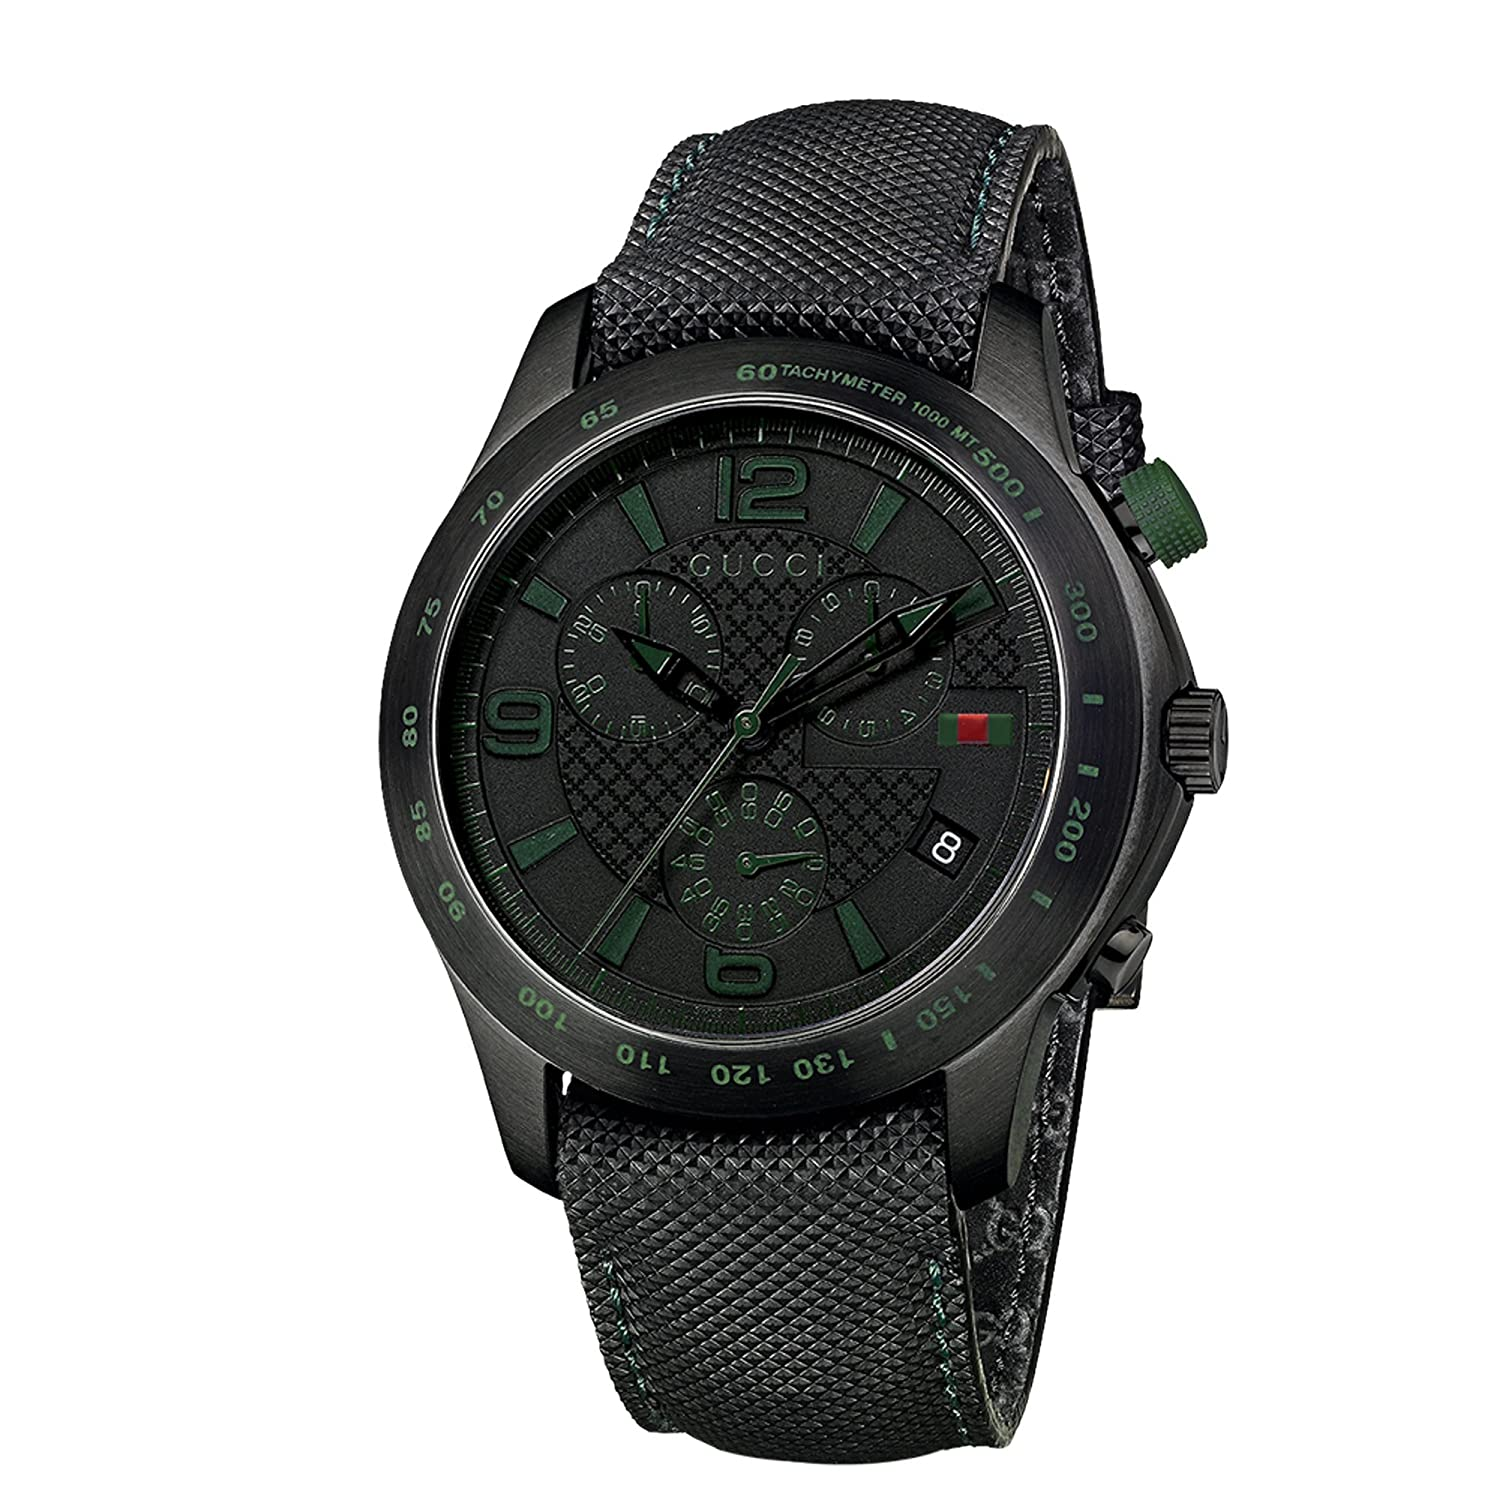 ecec389ed56 Gucci Men s YA126225 G-Timeless Chronograph Black IP Techno Leather Watch   Gucci  Amazon.ca  Watches